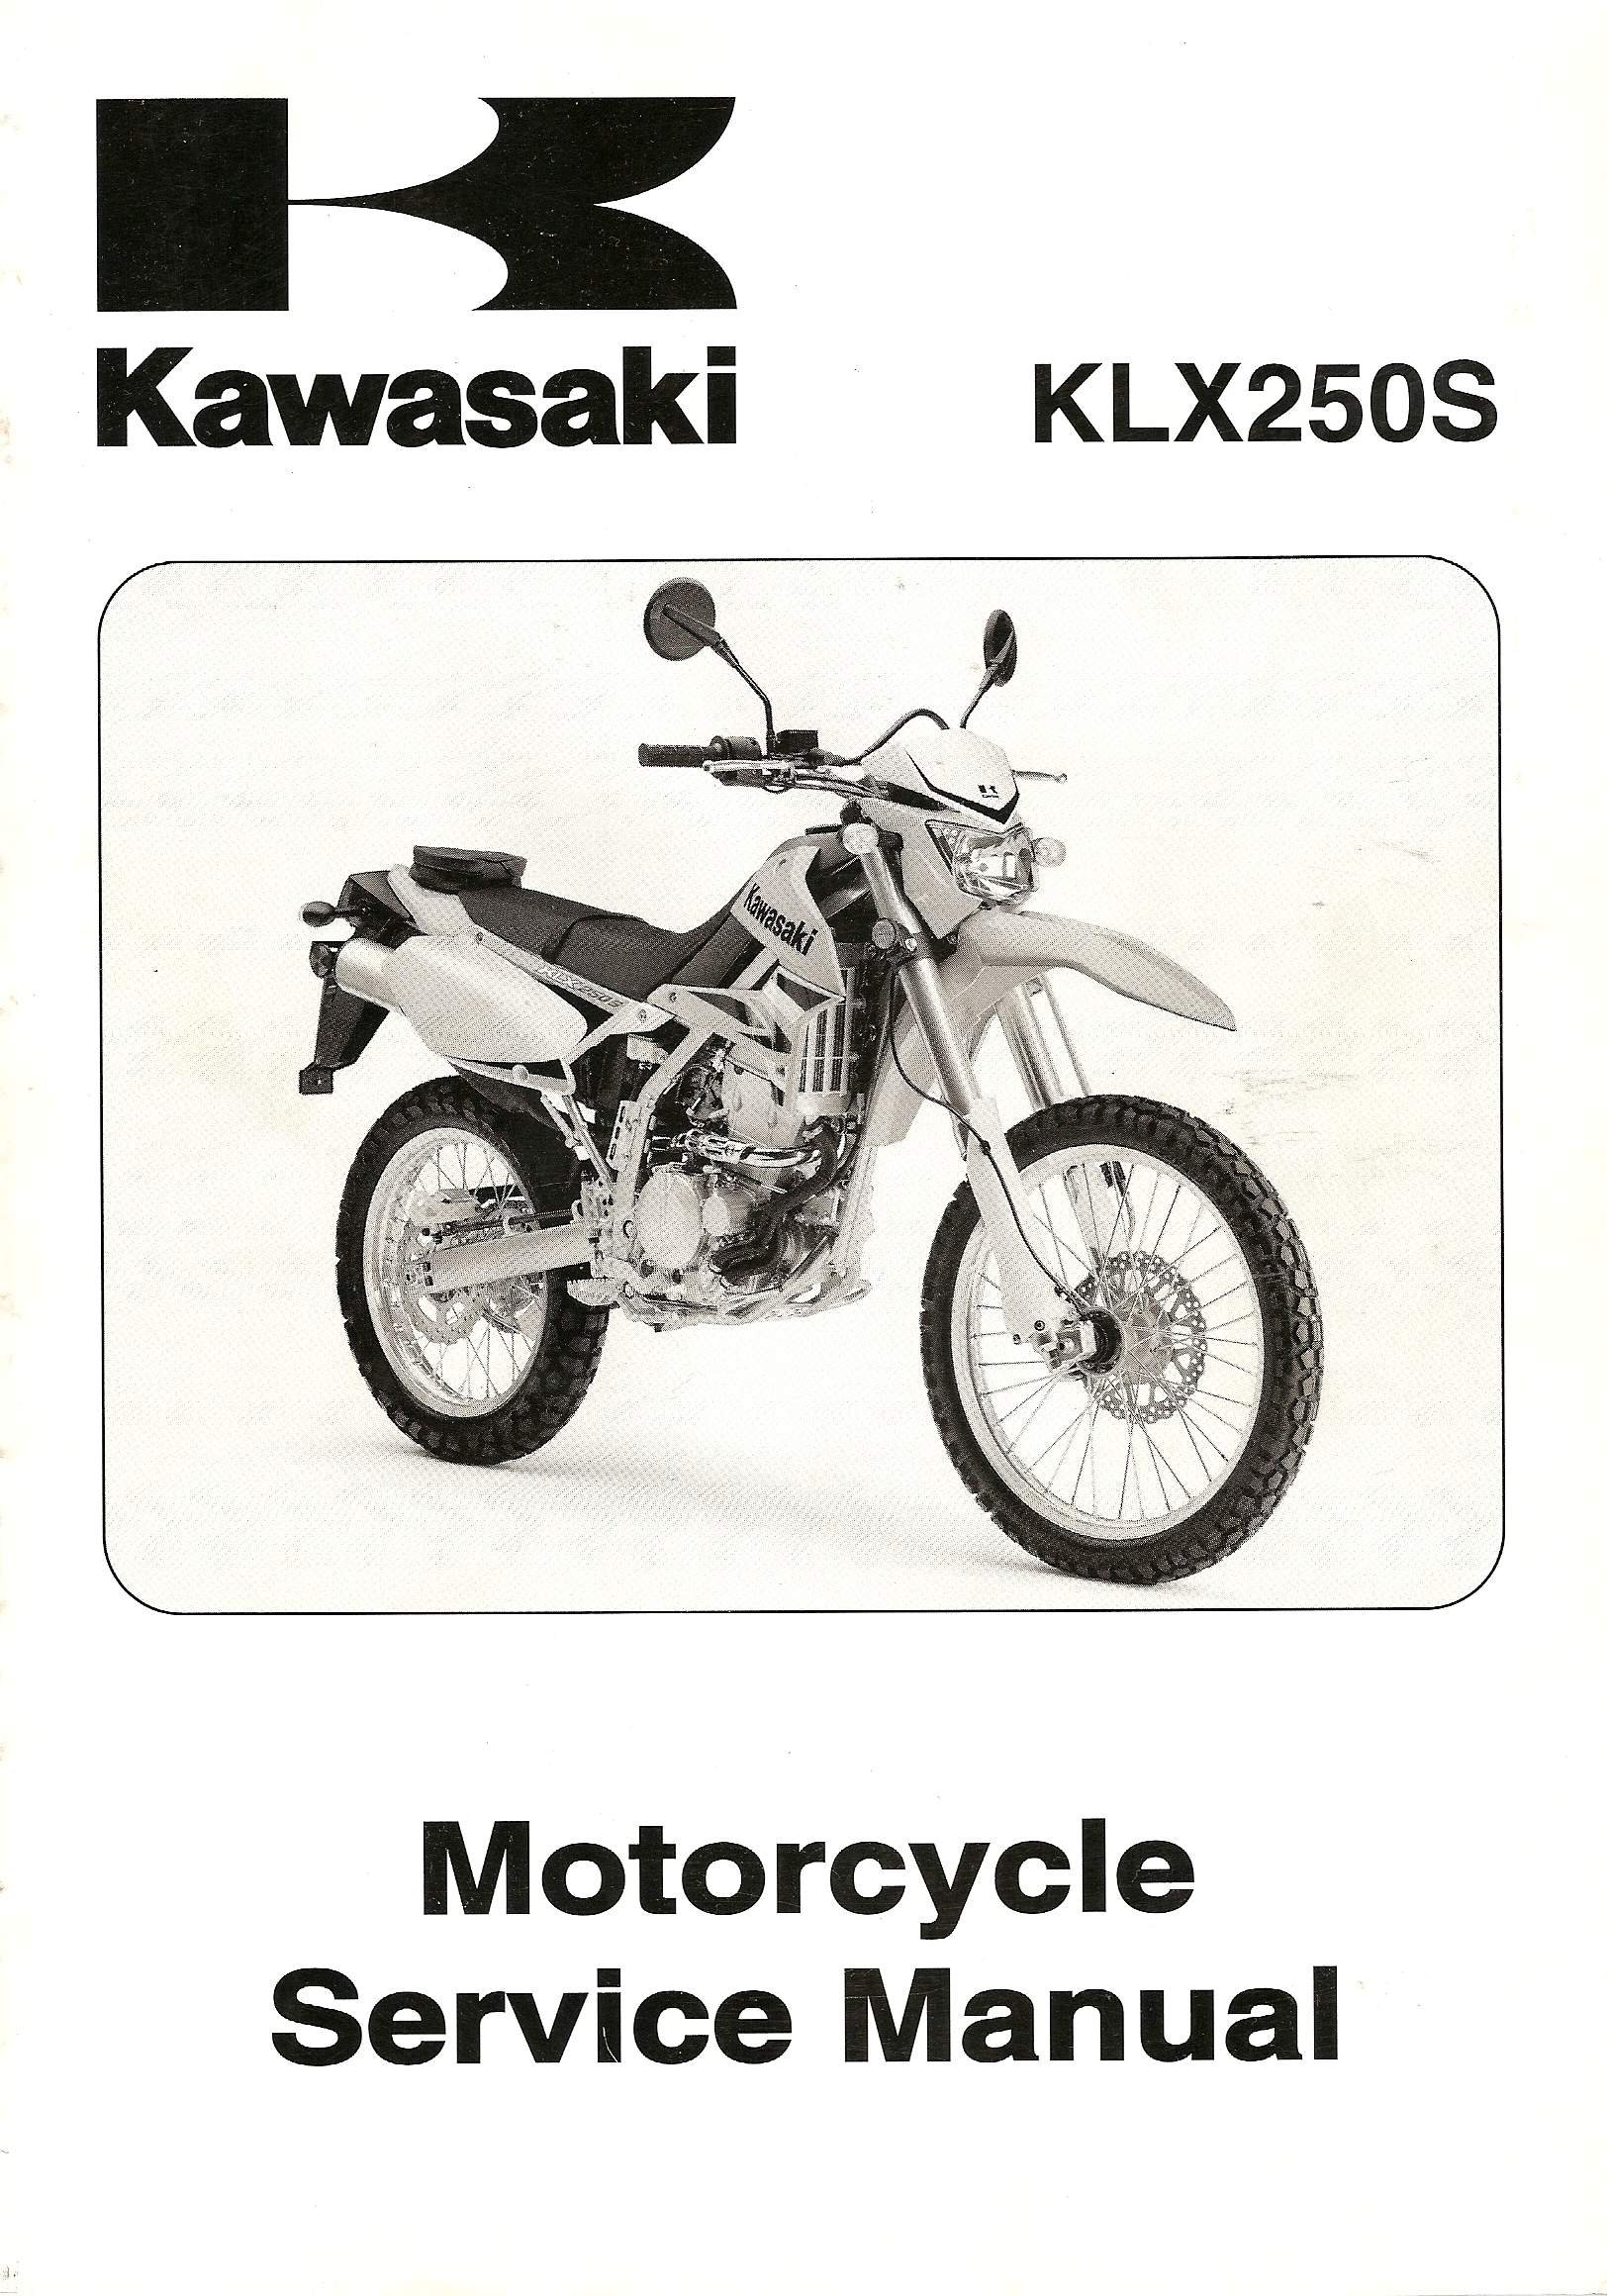 Kawasaki KLX250s Motorcycle Service Manual 2009: Kawasaki: Amazon.com: Books